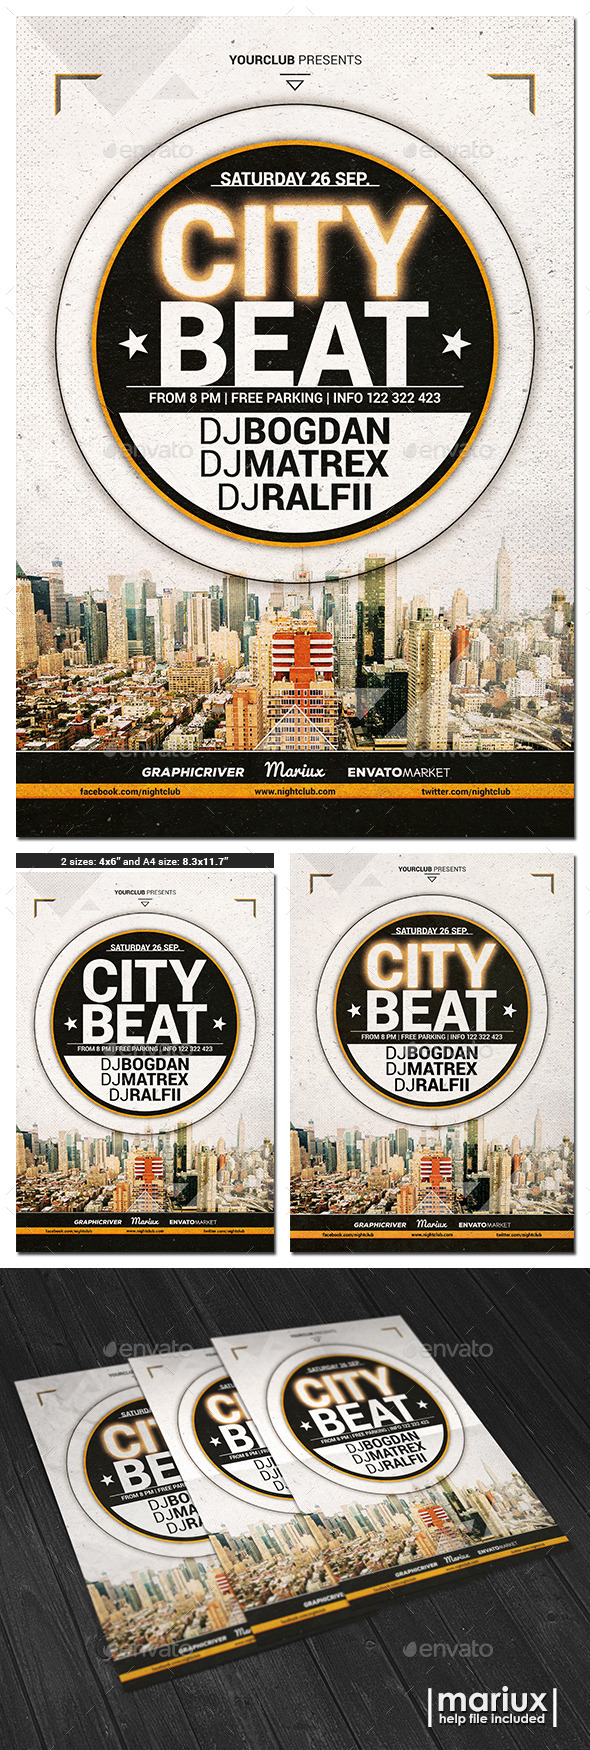 City Beat Flyer Poster - Clubs & Parties Events